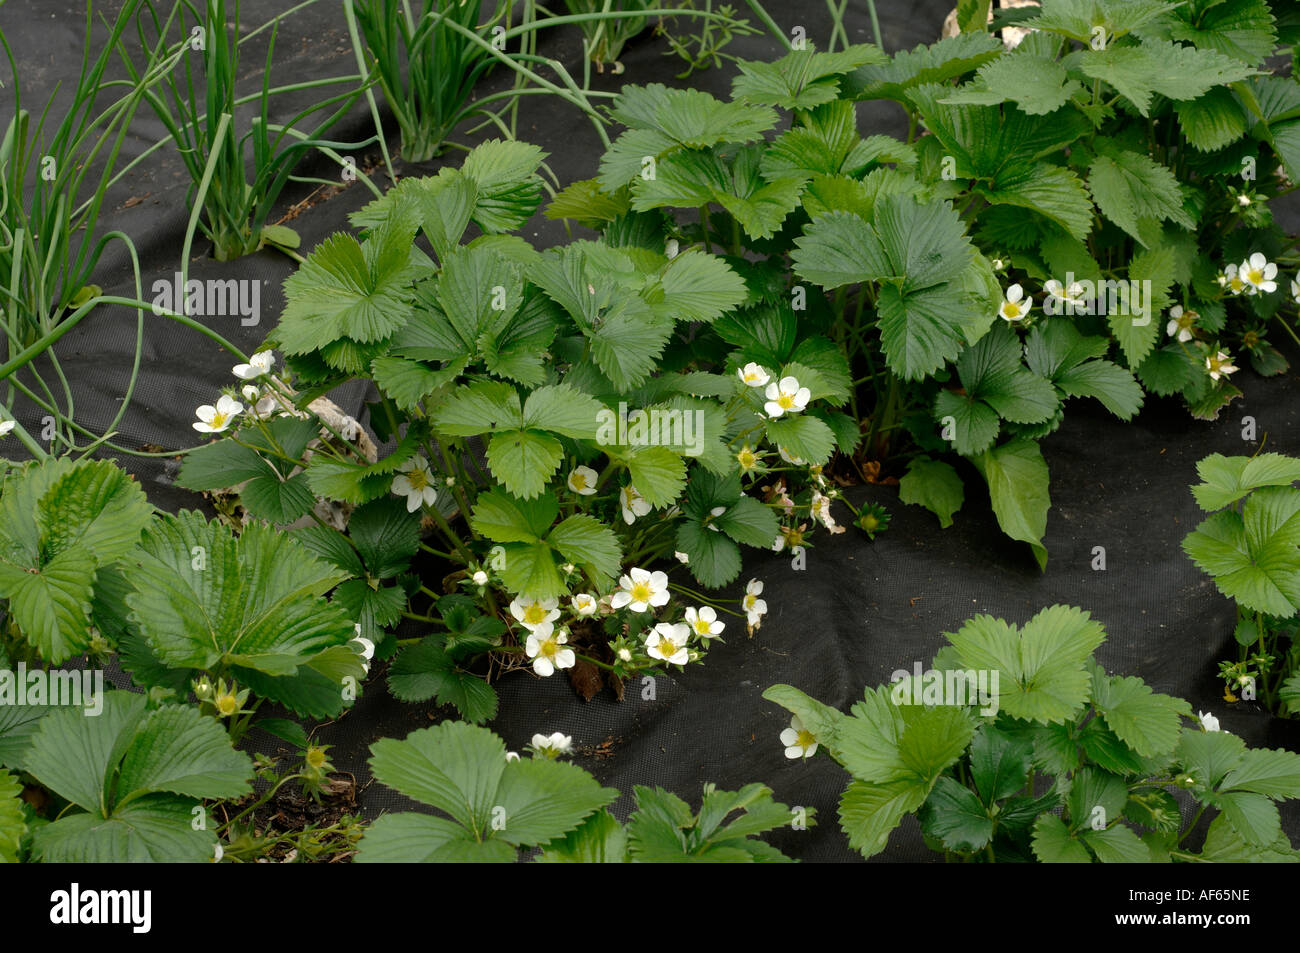 Strawberry plants in flower with black fabric liner mulching to ...